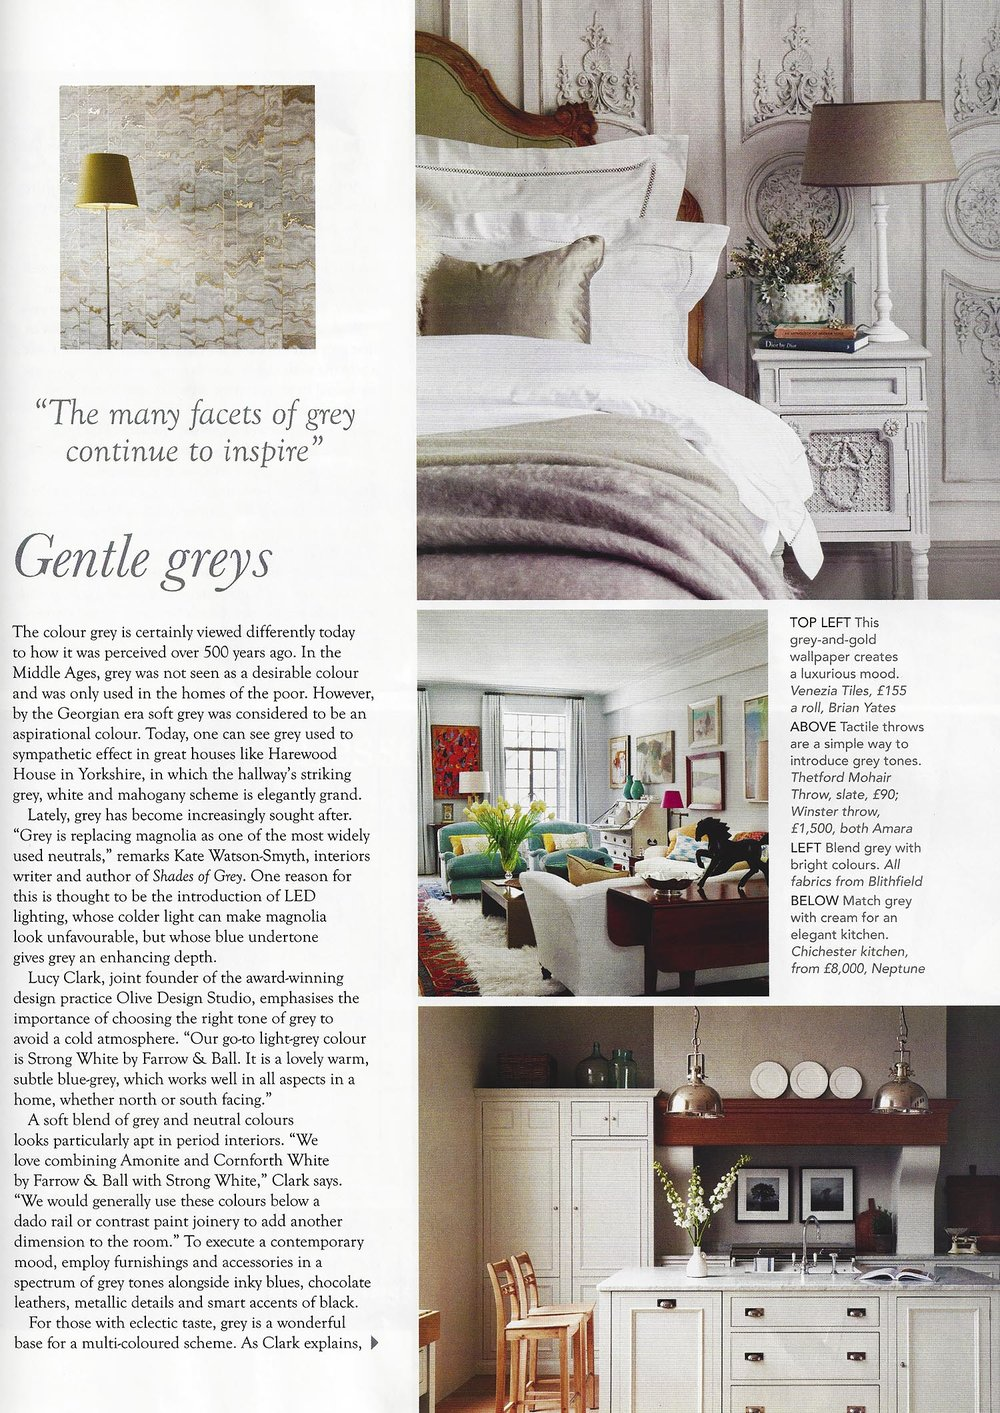 The English Home - Feb '17 - Page 24 - 'GENTLE GREYS - Page 97 (ANNE DUBBS' APARTMENT) - See Quotes.jpg